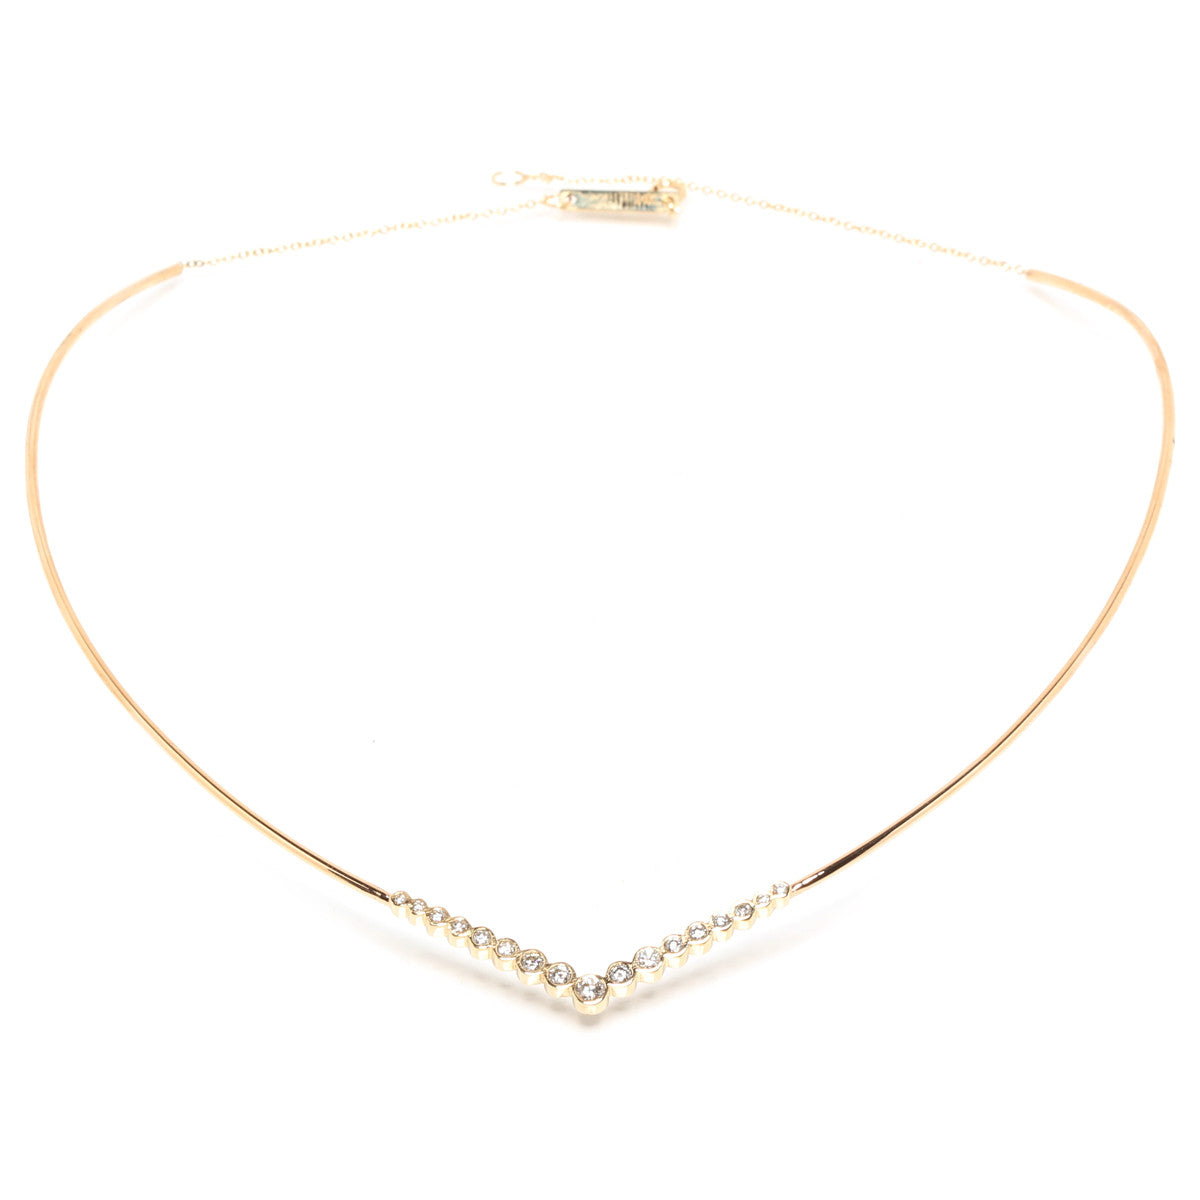 Zoë Chicco 14kt Yellow Gold Graduated V Bezel Set Diamond Collar Necklace